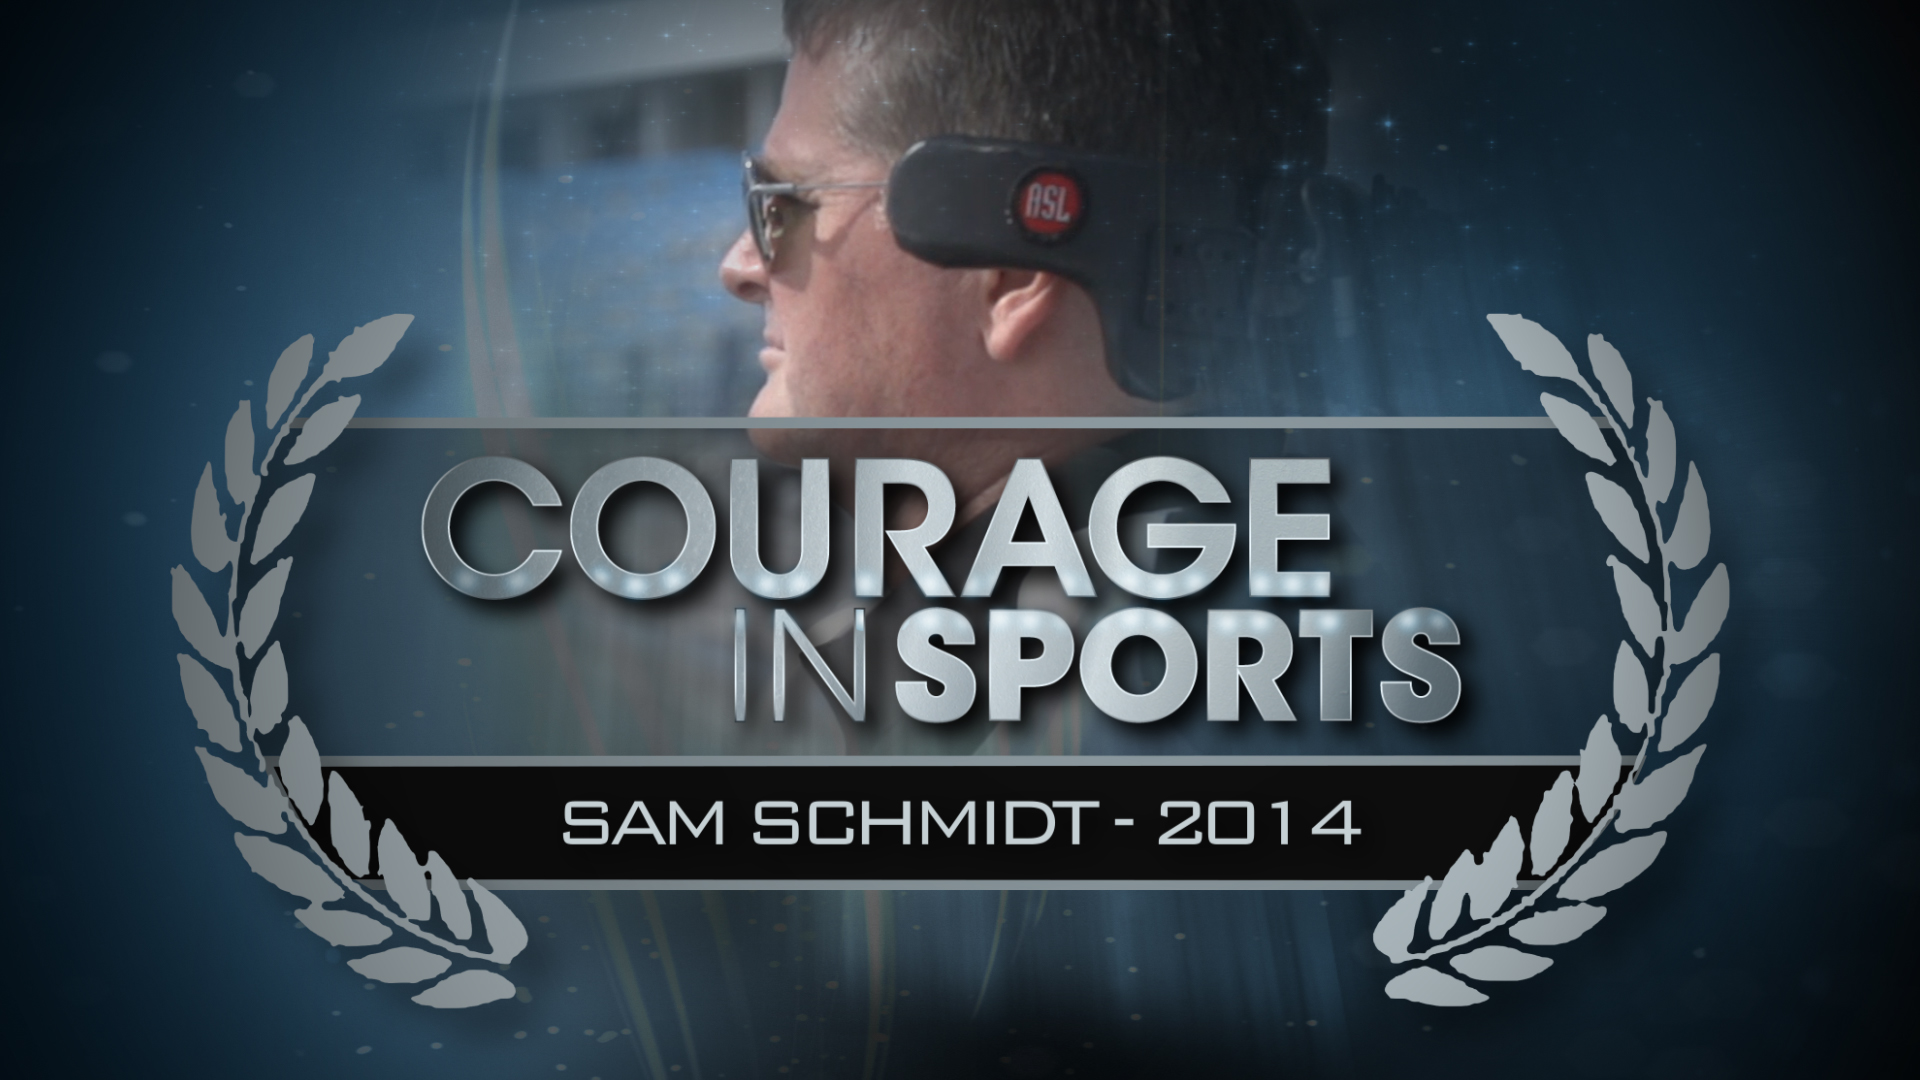 Lap of a lifetime: Sam Schmidt's story